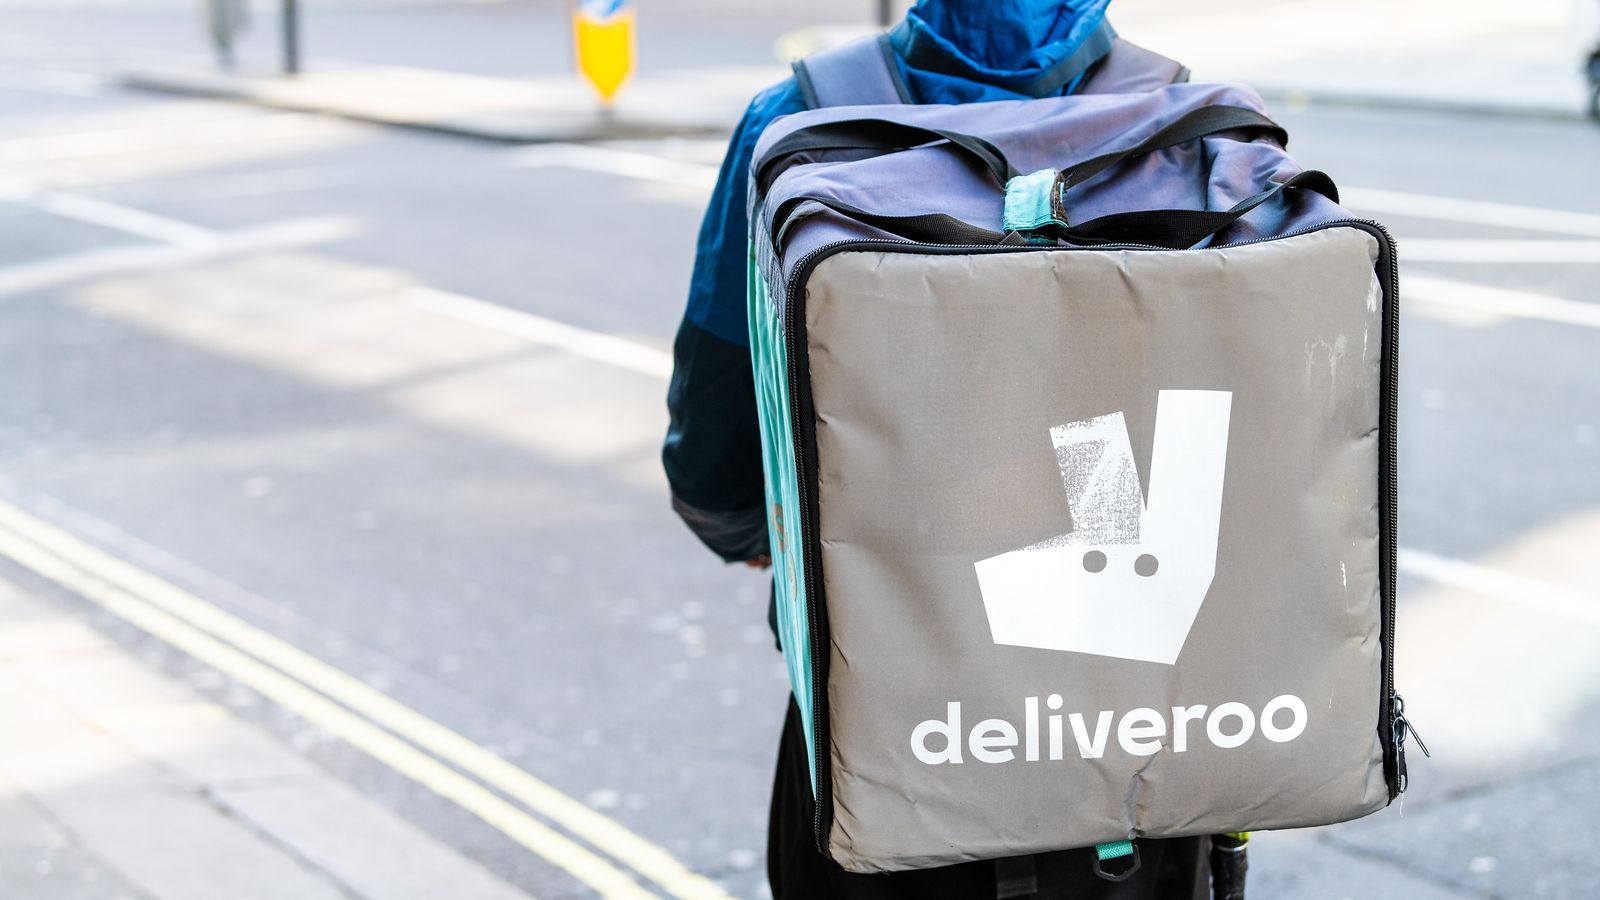 Coronavirus: Deliveroo adds tipping feature amid restaurant sector crisis | Business News